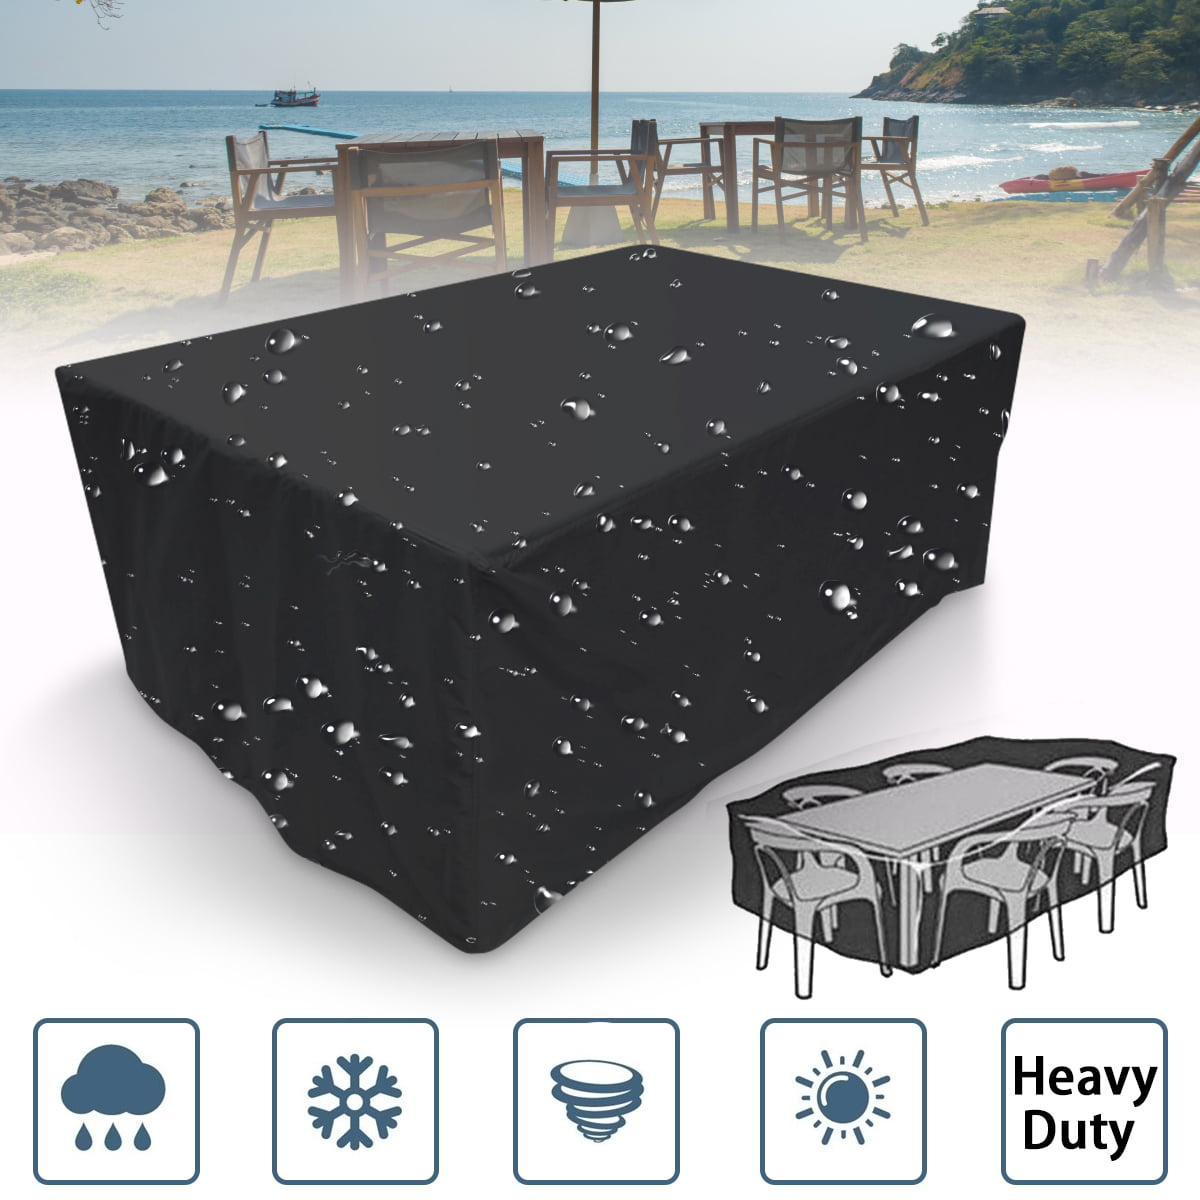 4 Size Outdoor Rectangular Waterproof Furniture Cover